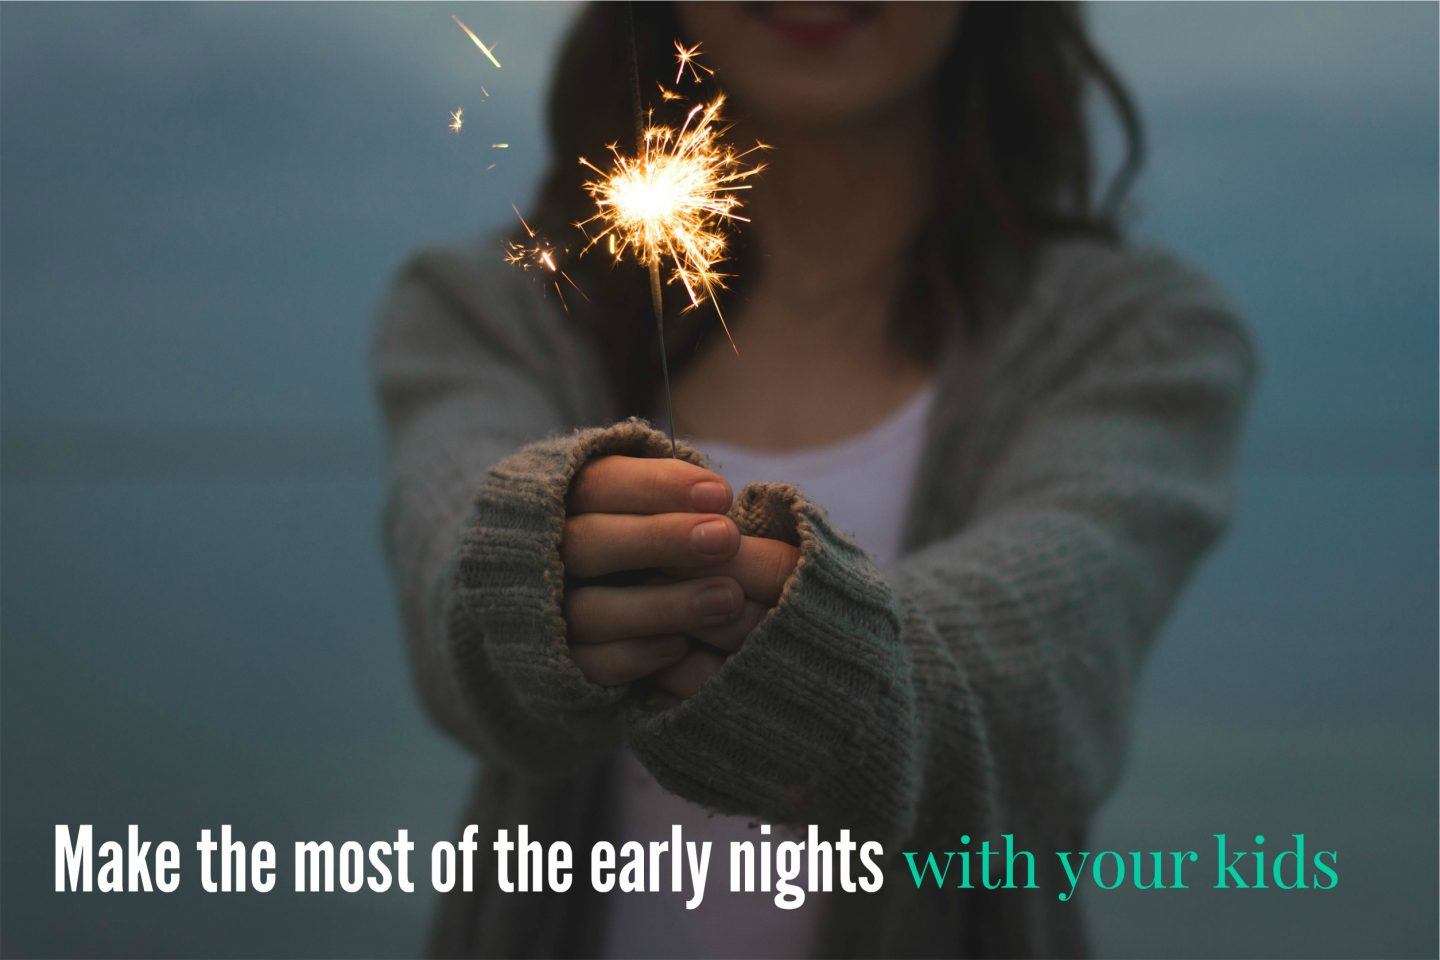 Fun early night ideas for families